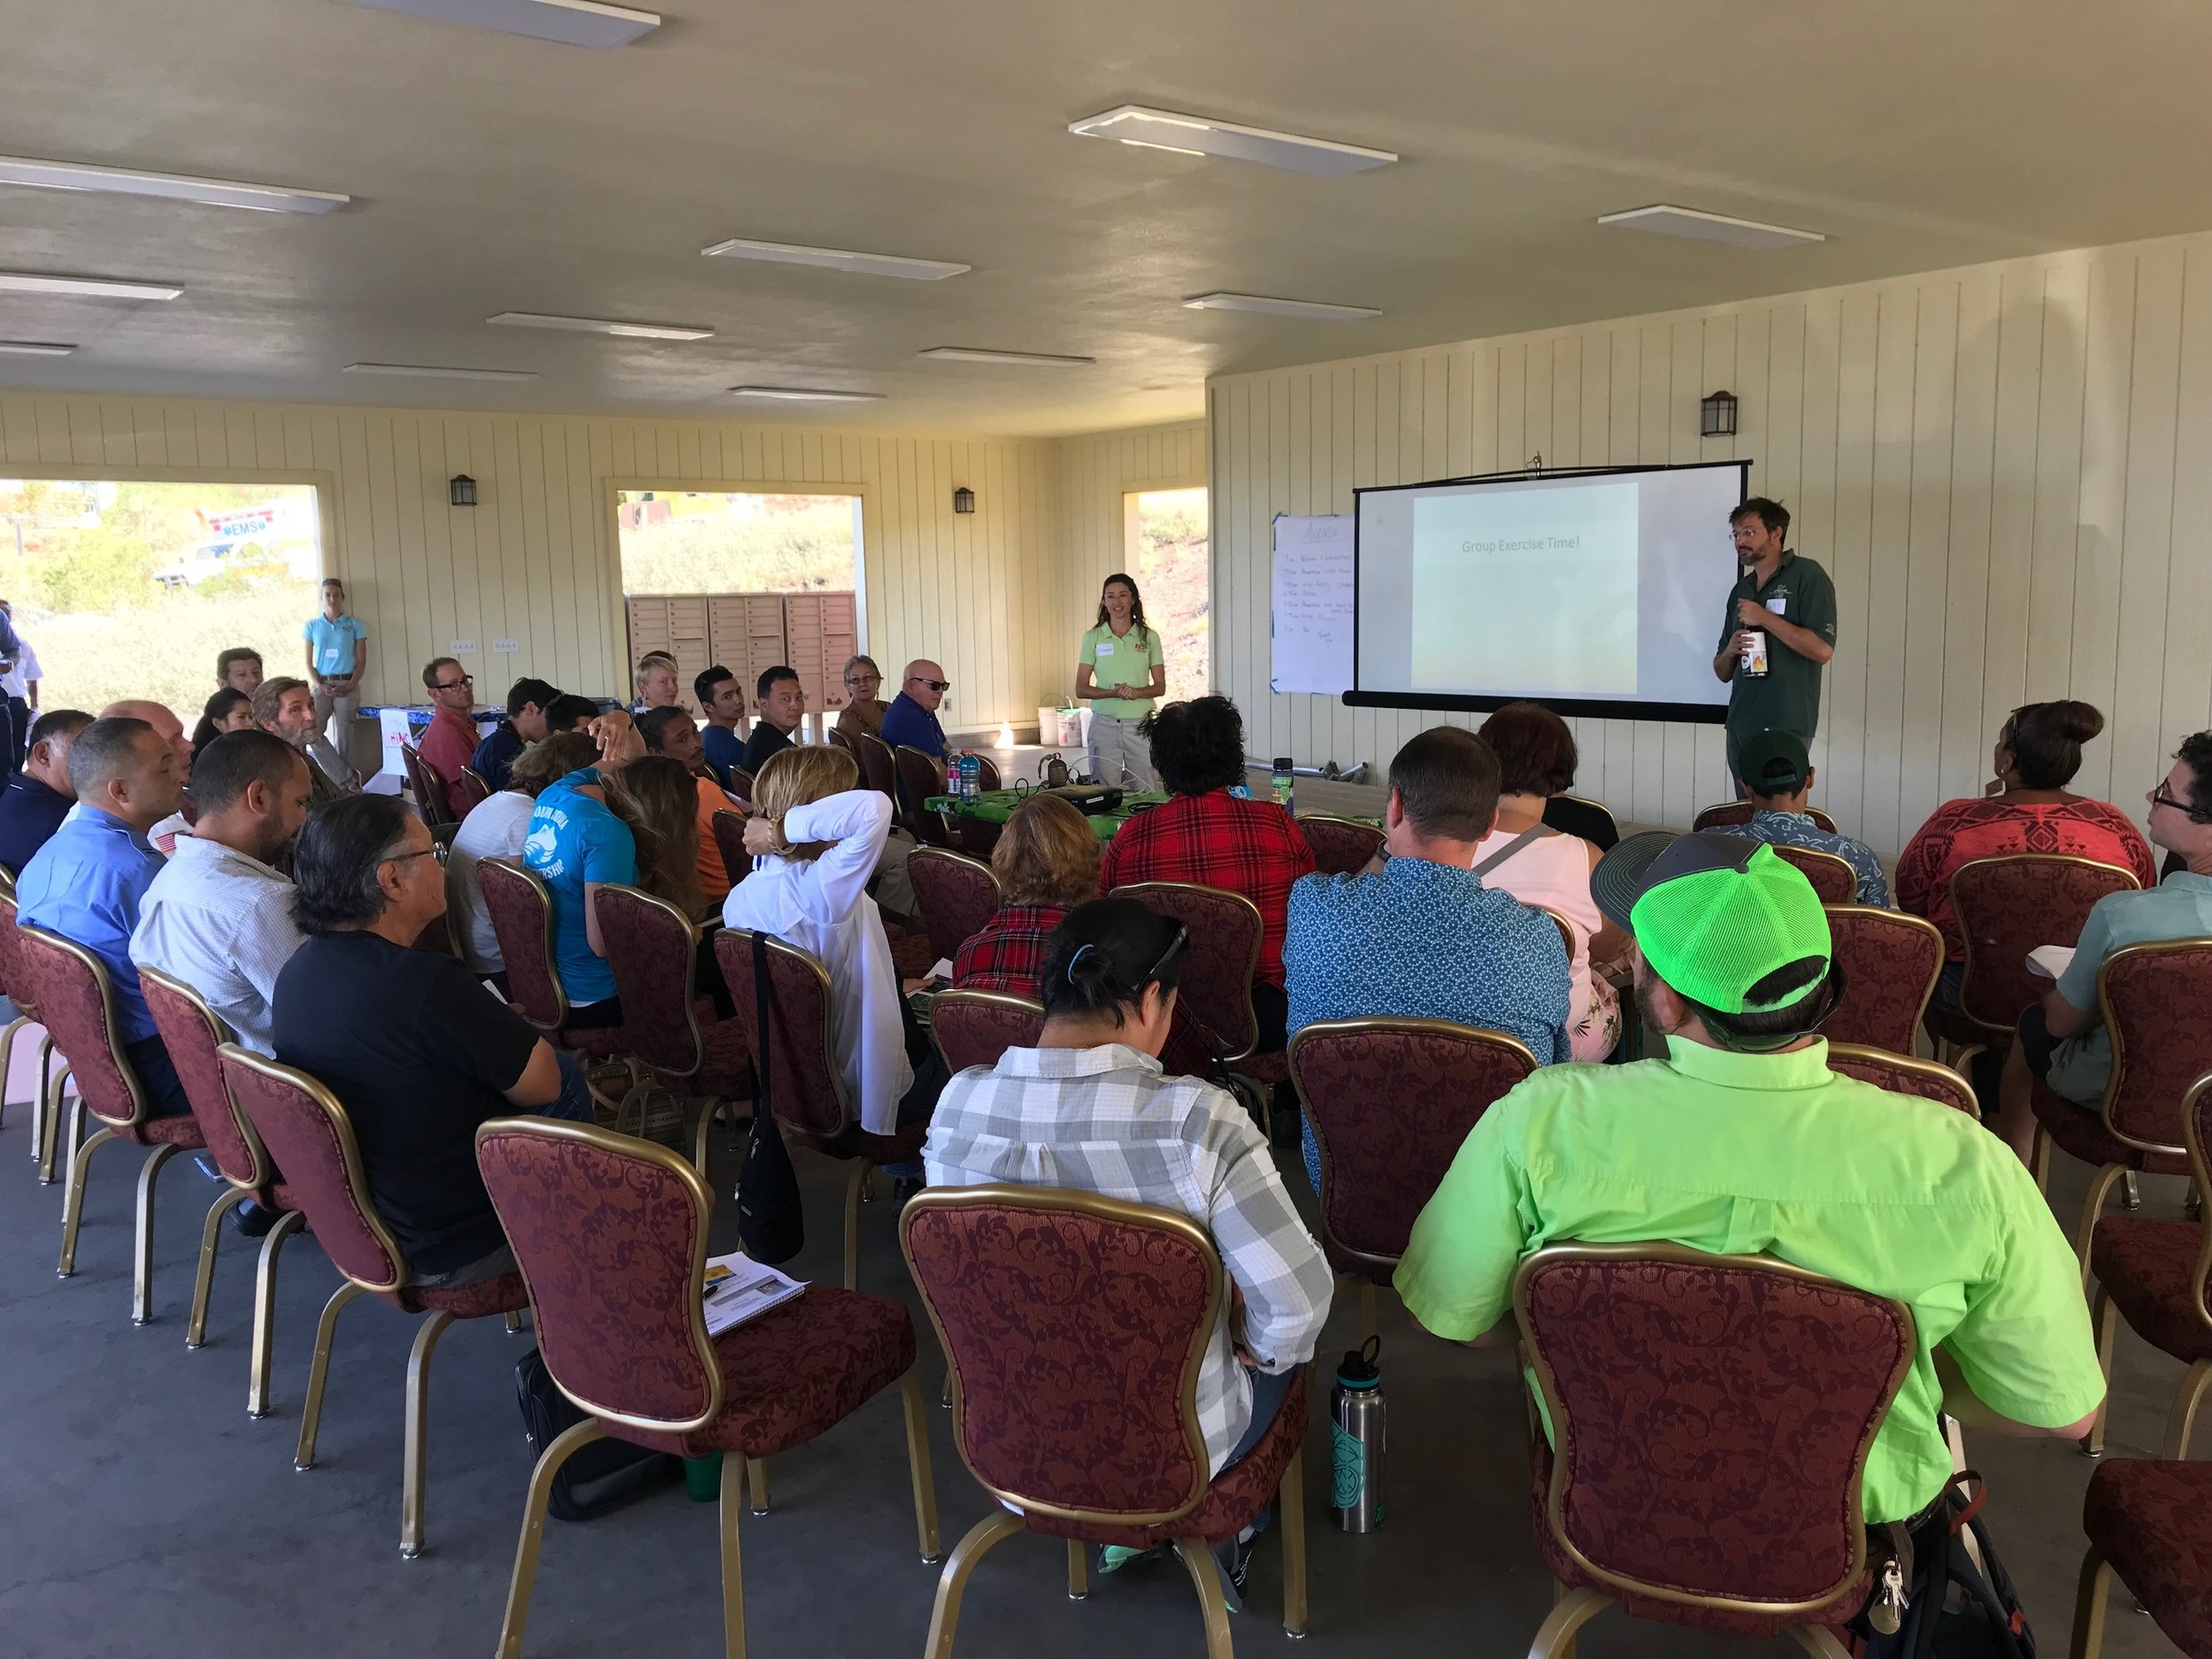 Hawaii Island Kailapa Vegetative Fuels Management Collaborative Action Planning Workshop_2_26_2019_23.jpg